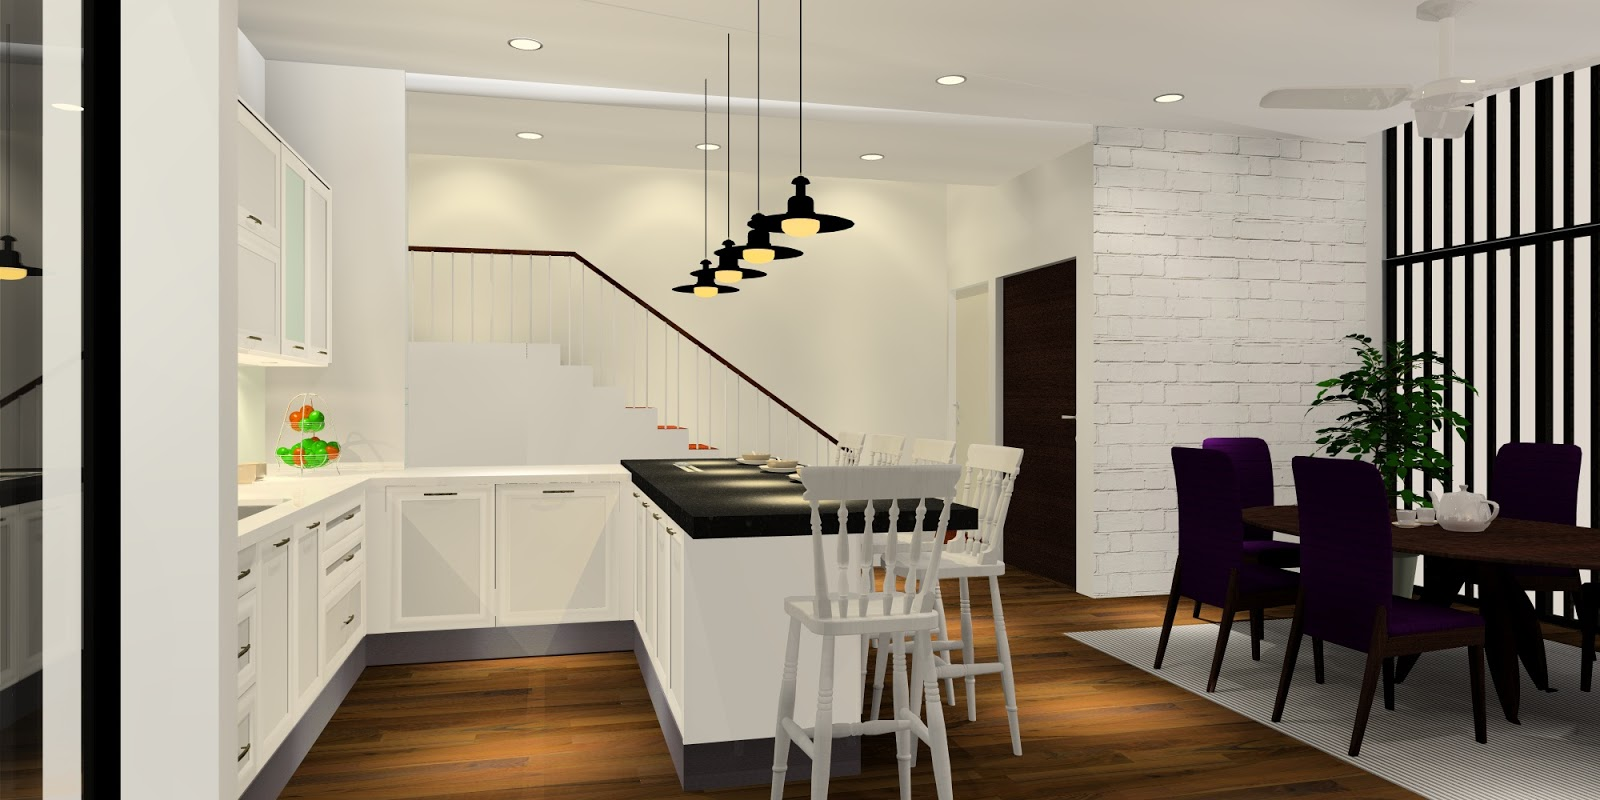 Creating happiness through my interior designs - home, kitchen and ...